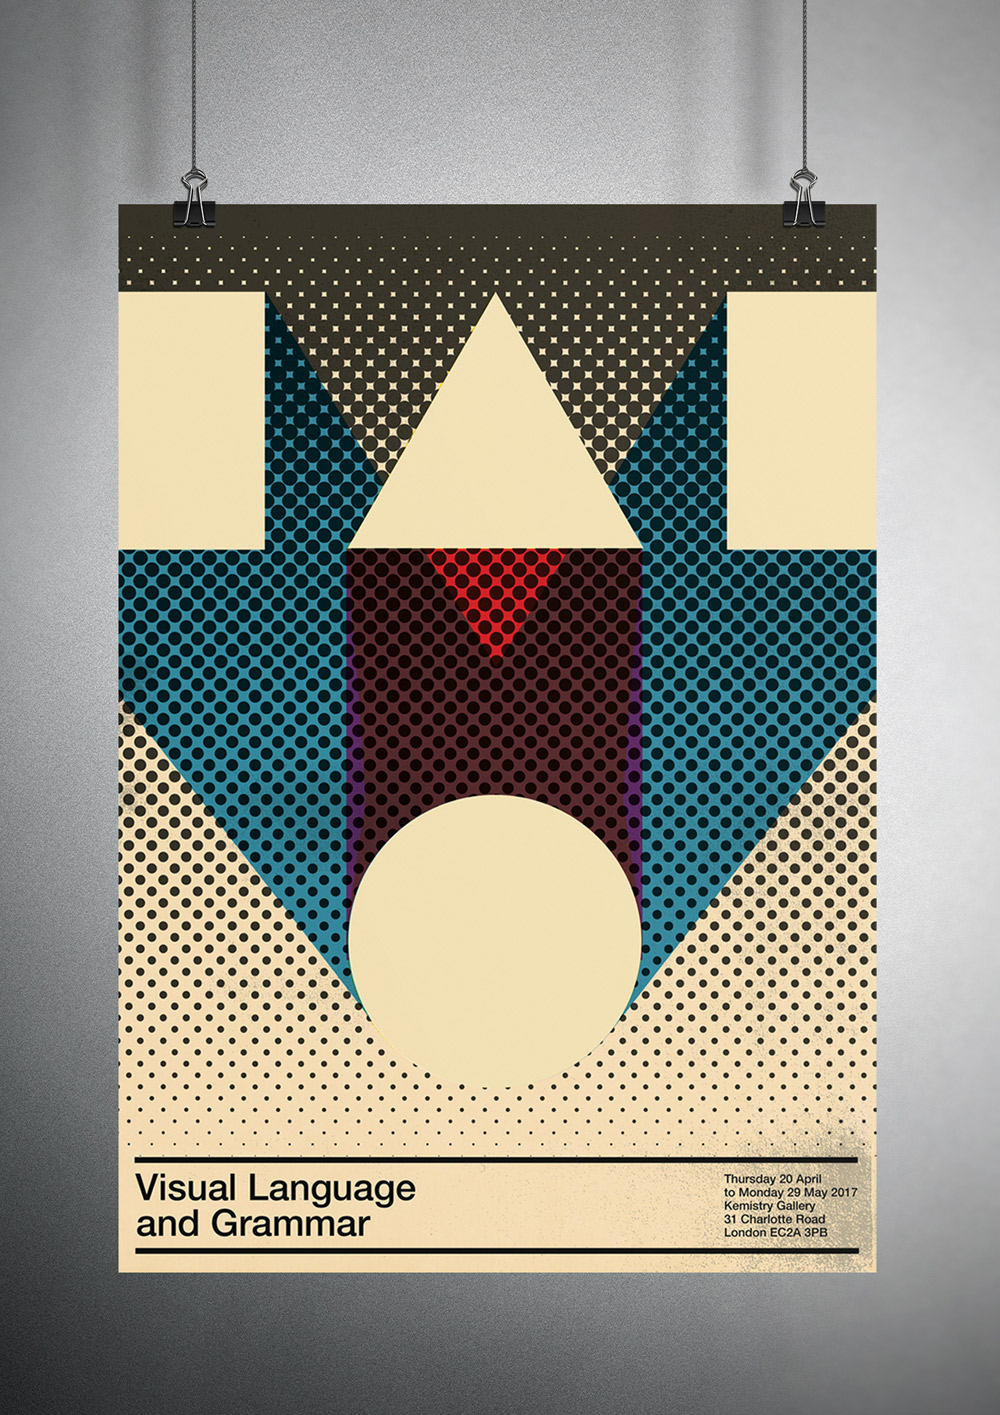 Poster for series of talks on Visual Language and Grammar.